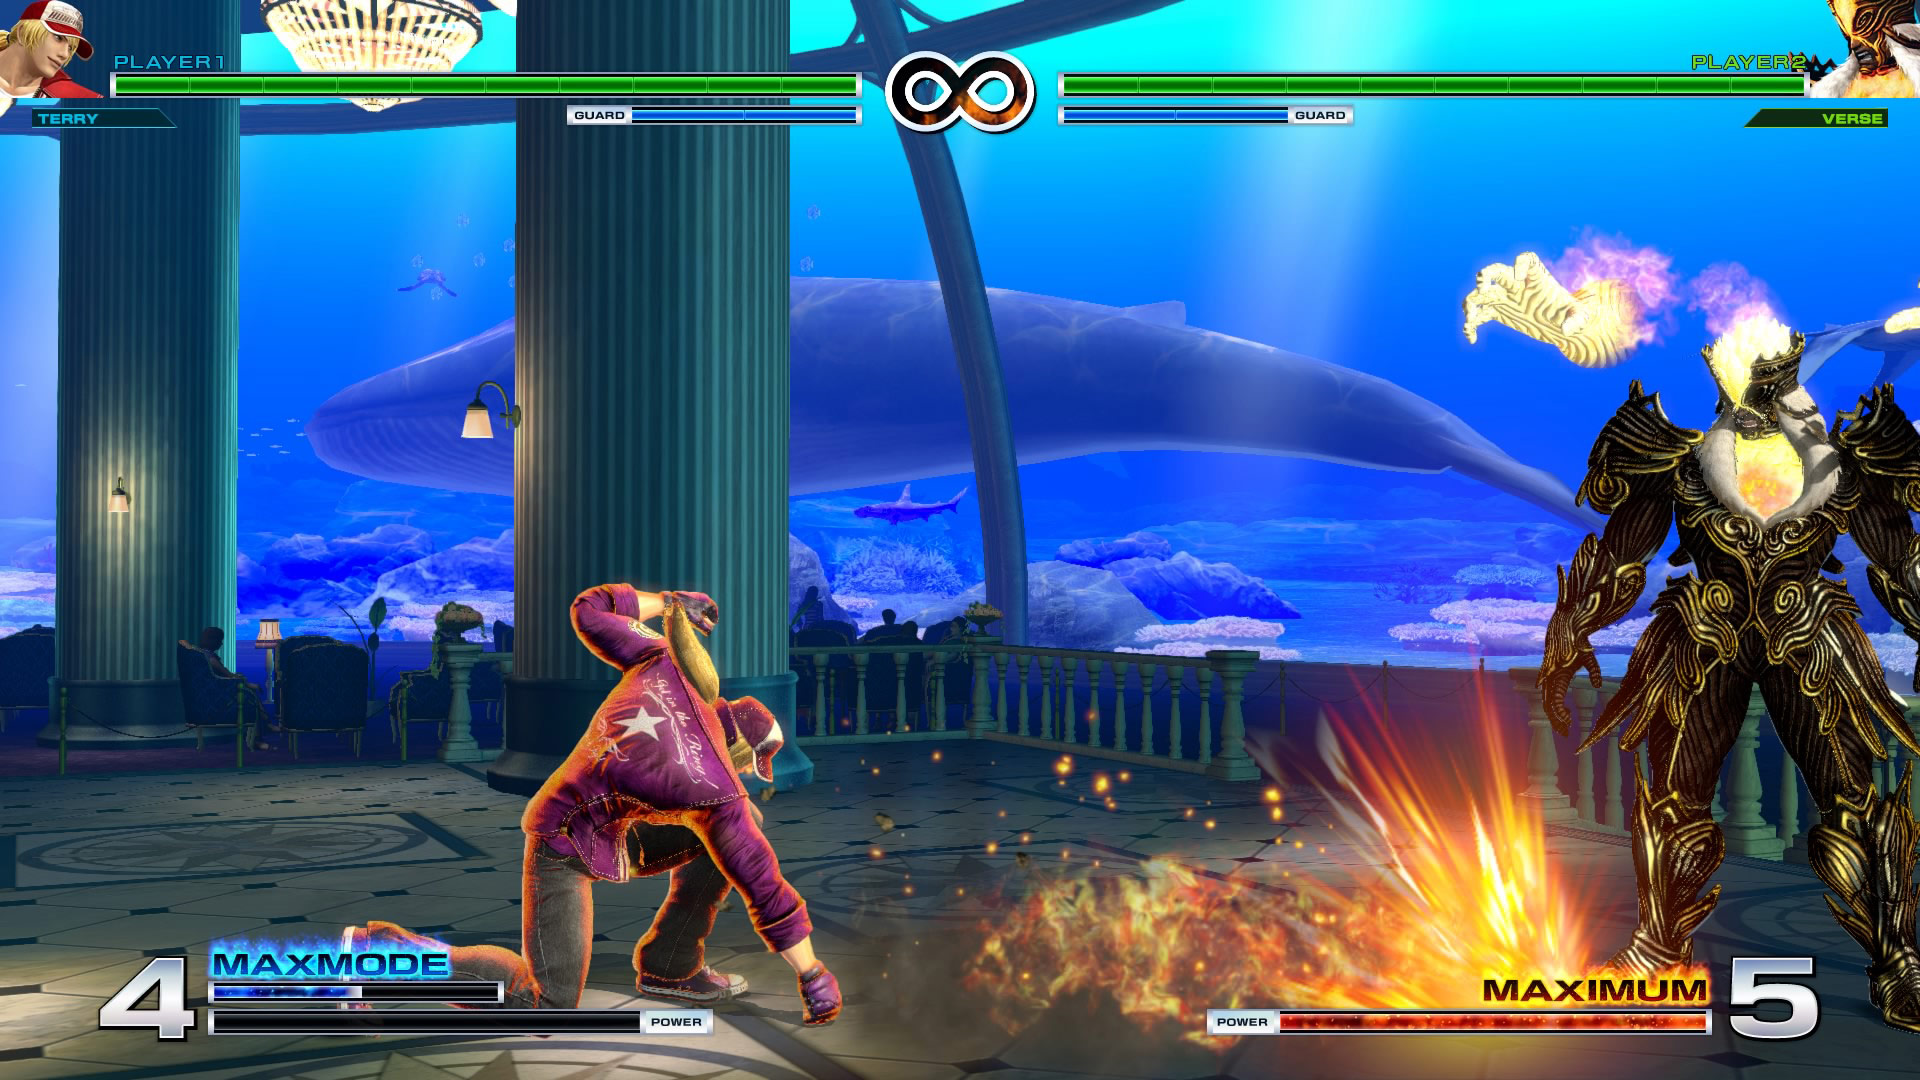 King of Fighters 14 1.10 graphics update 52 out of 60 image gallery